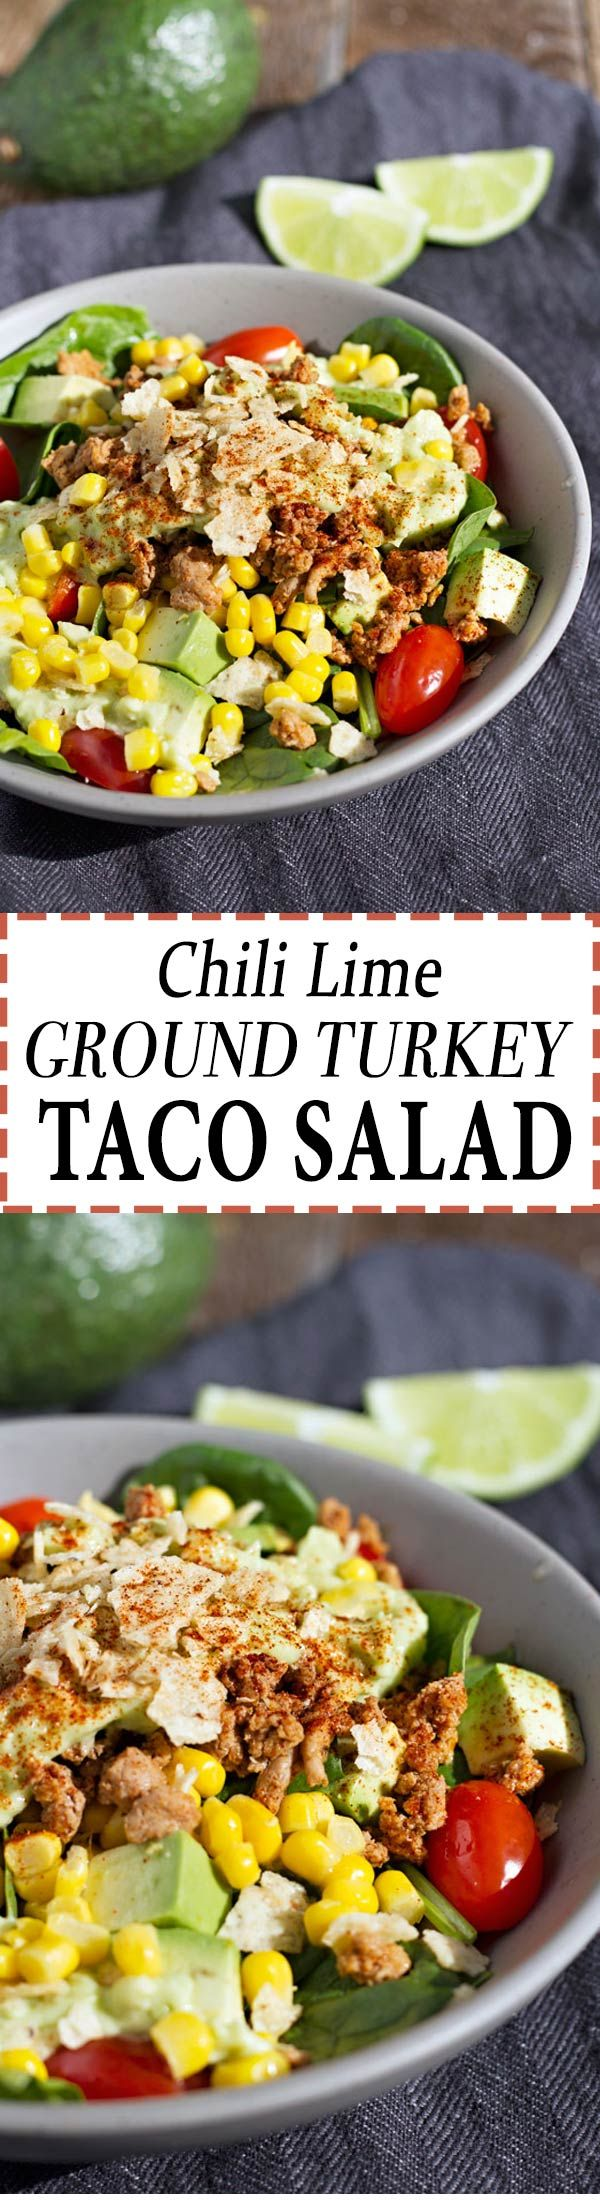 Delicious Chili Lime Ground Turkey Taco Salad!